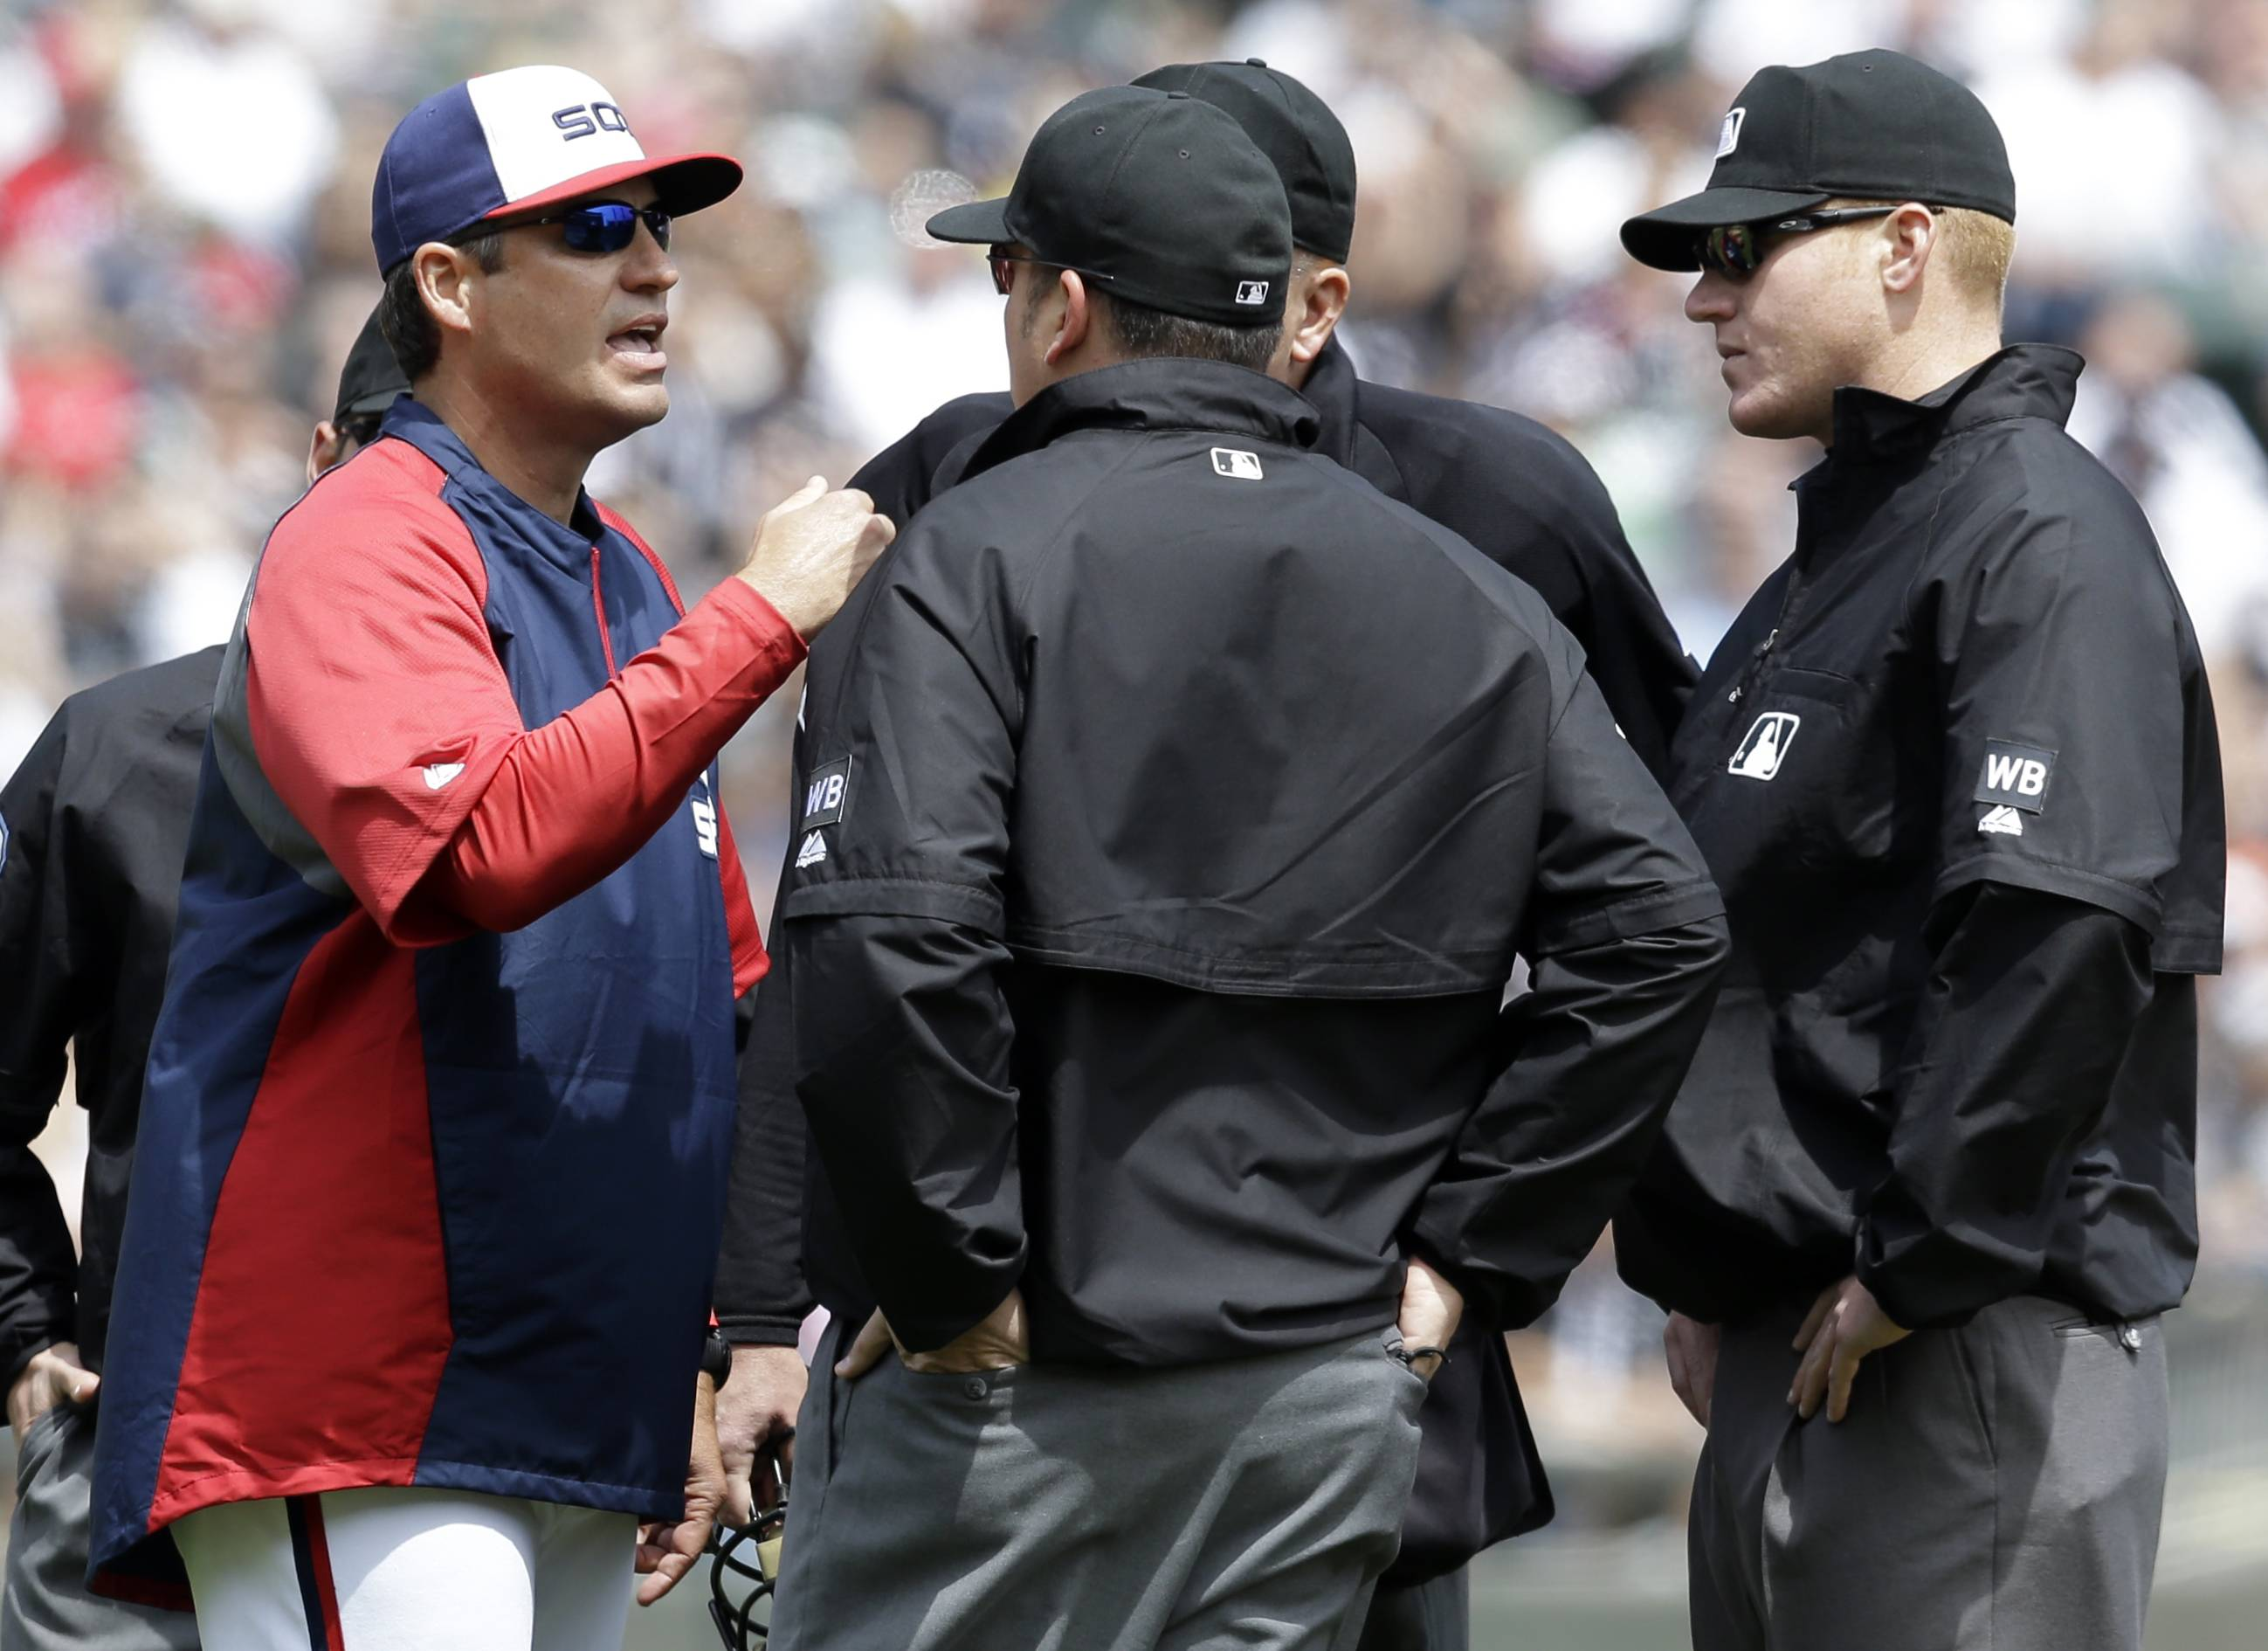 Chicago White Sox manager Robin Ventura, left, argues with umpires during the second inning of a baseball game against the New York Yankees in Chicago on Saturday, May 24, 2014.